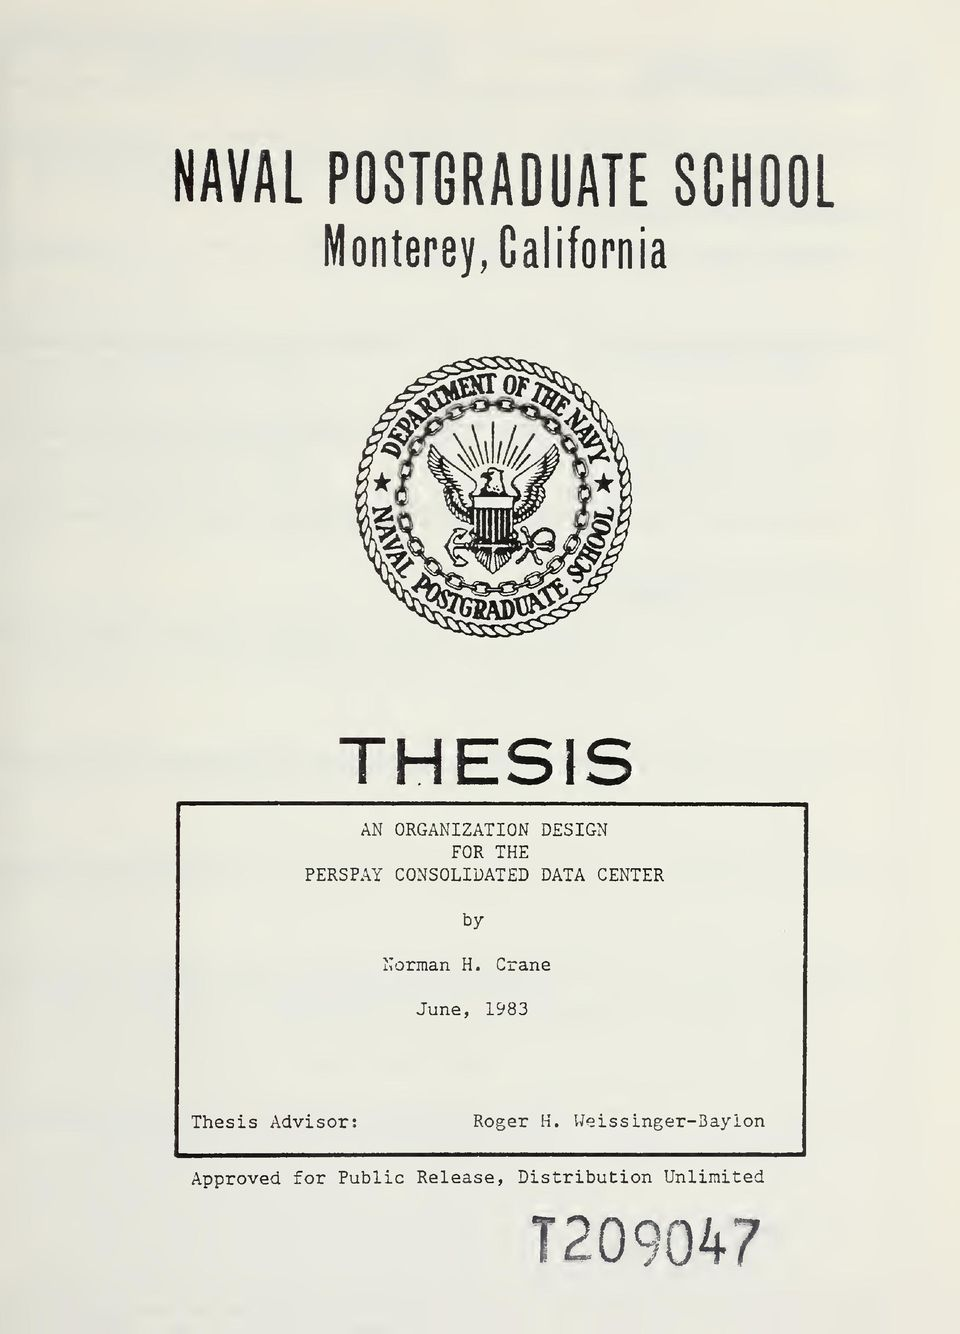 naval postgraduate school thesis papers Charges of academic misconduct -- including a professor's attempt to rewrite a student's thesis and a subsequent coverup -- are threatening to tarnish the reputation of the naval postgraduate school in monterey, one of the world's elite military training centers.